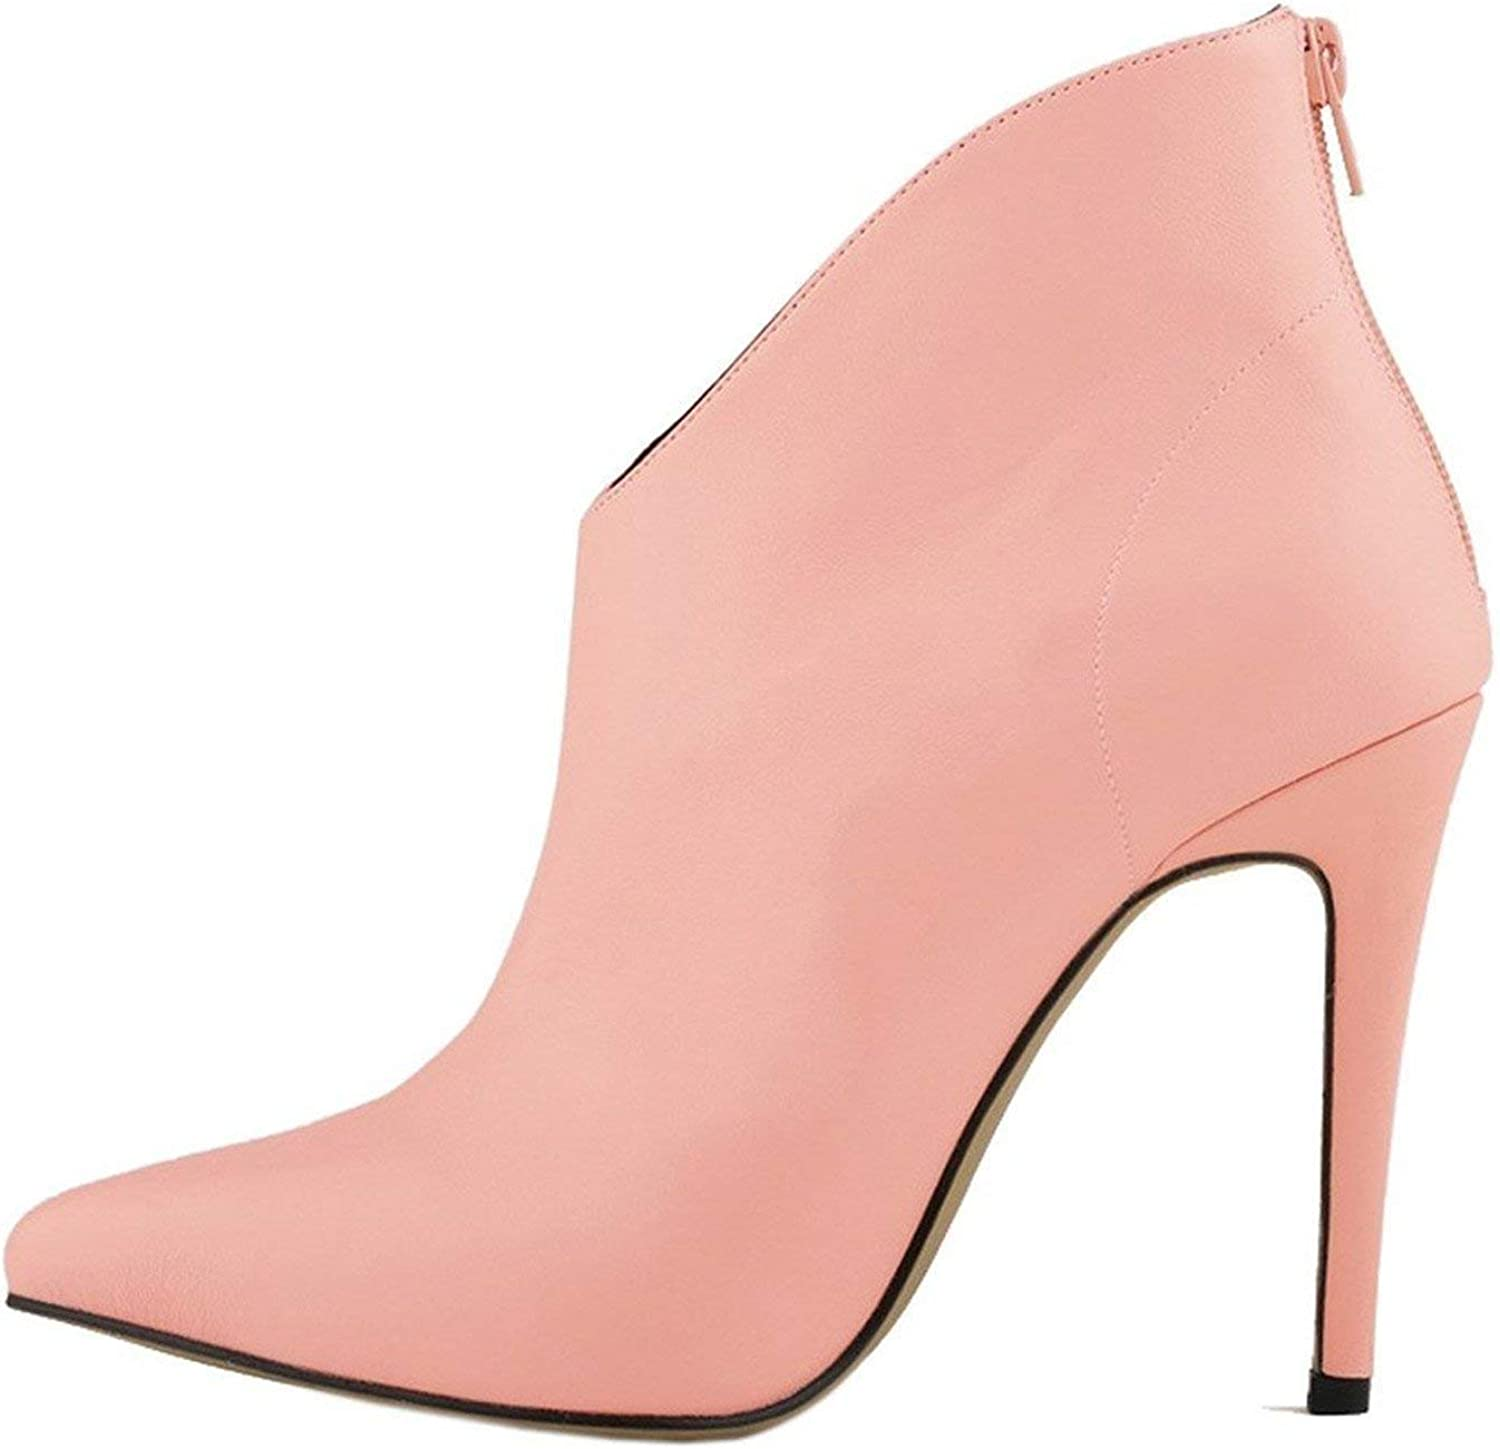 High end Womens Elegant and Simple Zip Slip On Pointed Toe Stiletto High Heel Pump shoes,8.5B(M) US,Pink